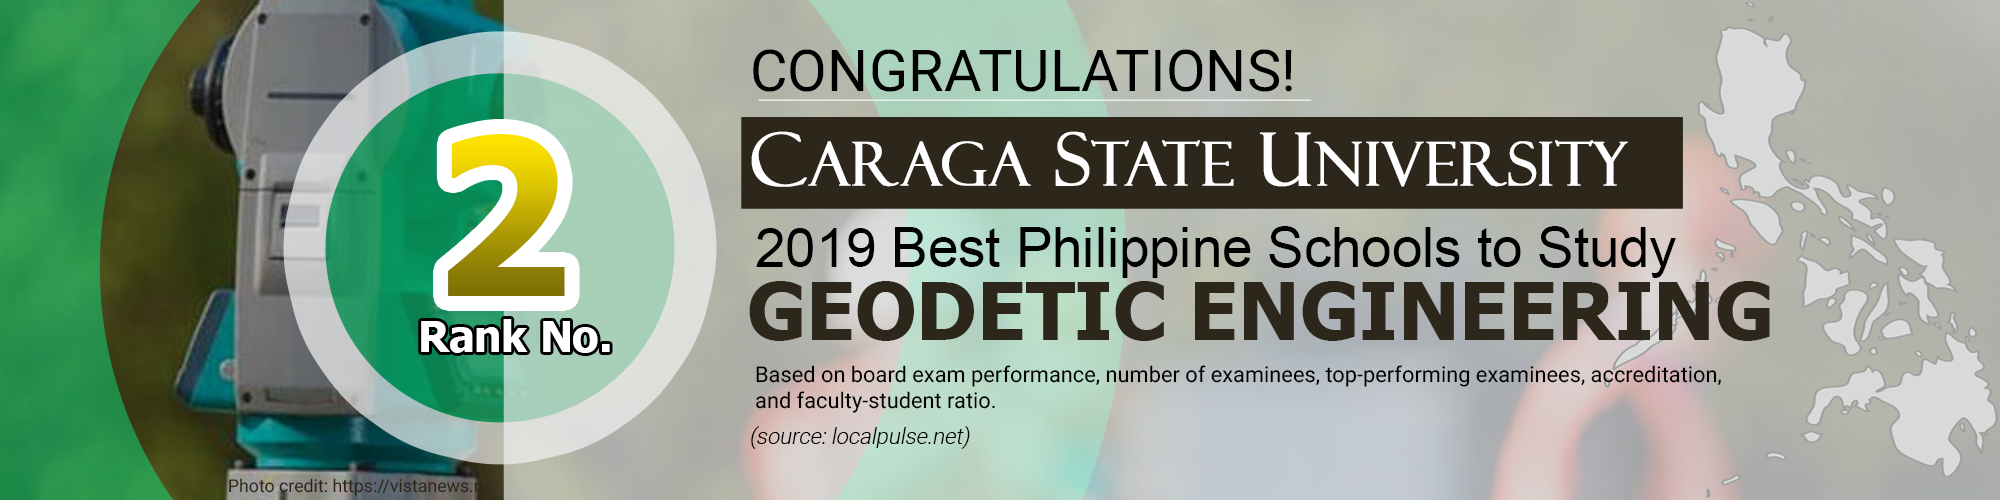 10 Best Philippine Schools to Study Geodetic Engineering for 2019